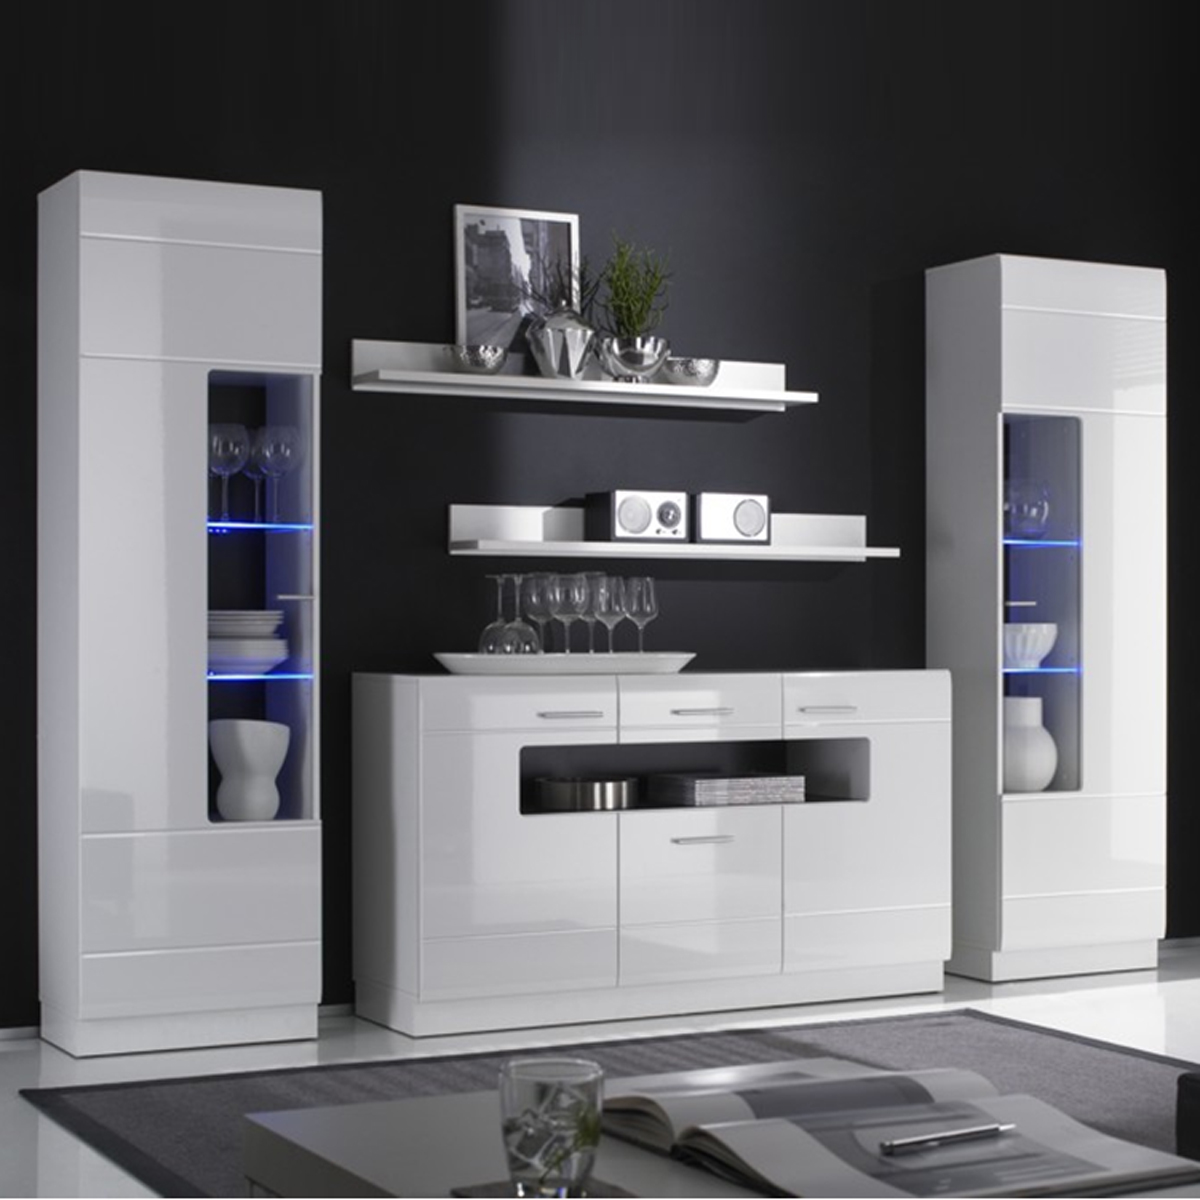 wohnkombi cabana esszimmer anbauwand wohnwand in wei hochglanz ebay. Black Bedroom Furniture Sets. Home Design Ideas